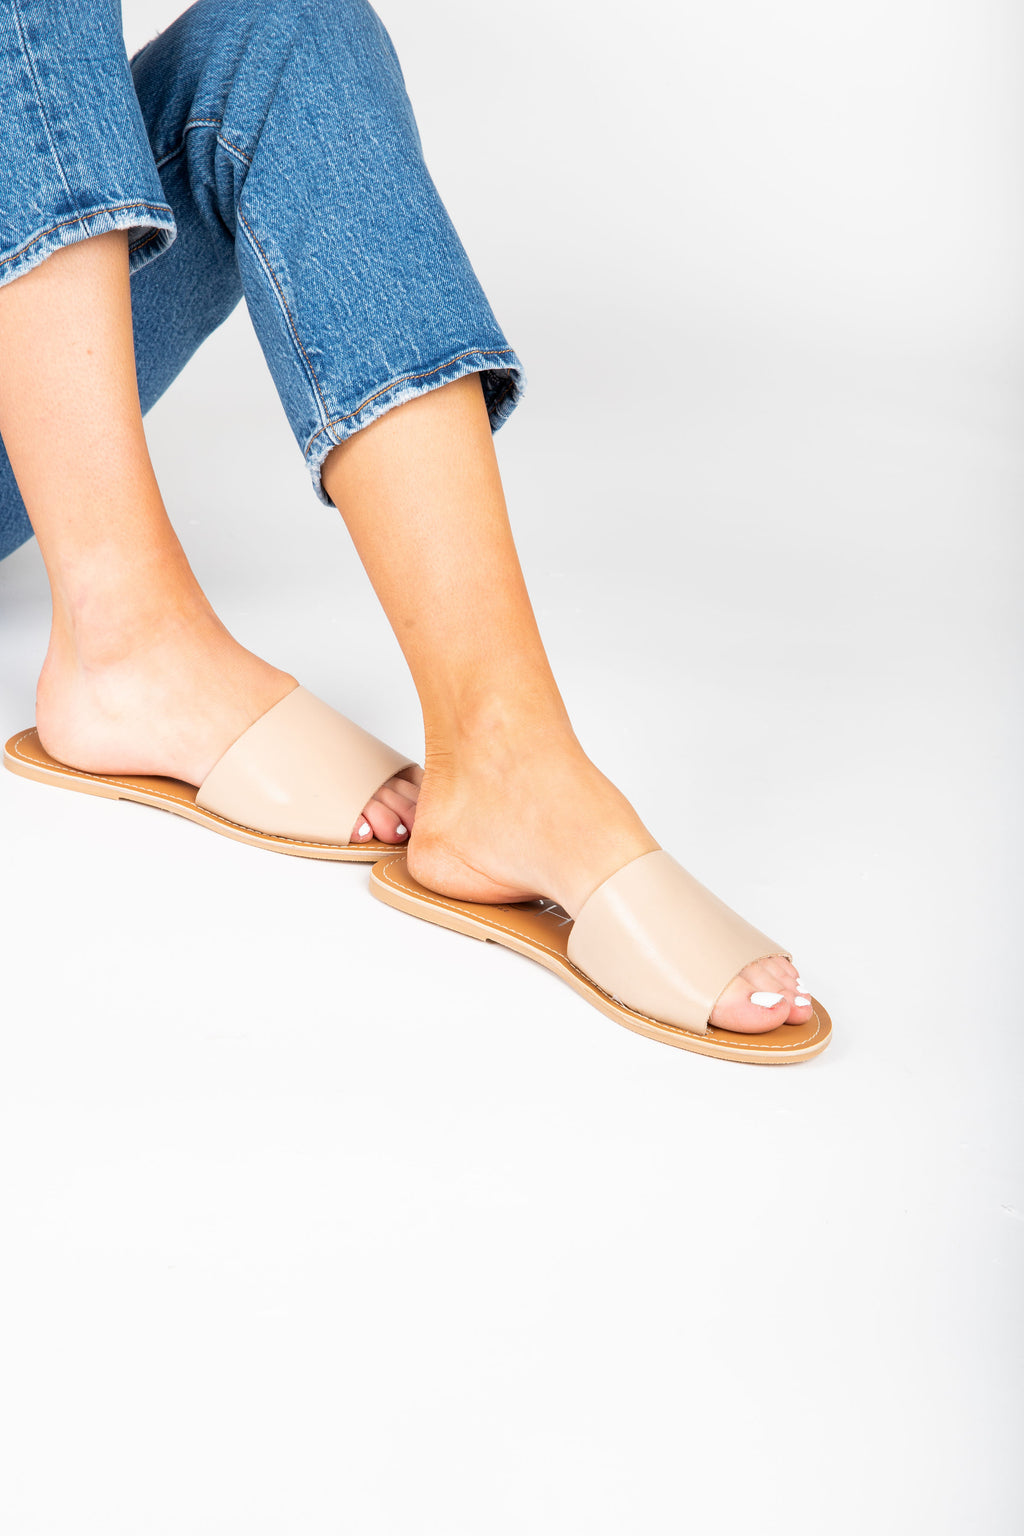 Coconuts by Matisse: Cabana Slide Sandal in Natural, studio shoot; side view